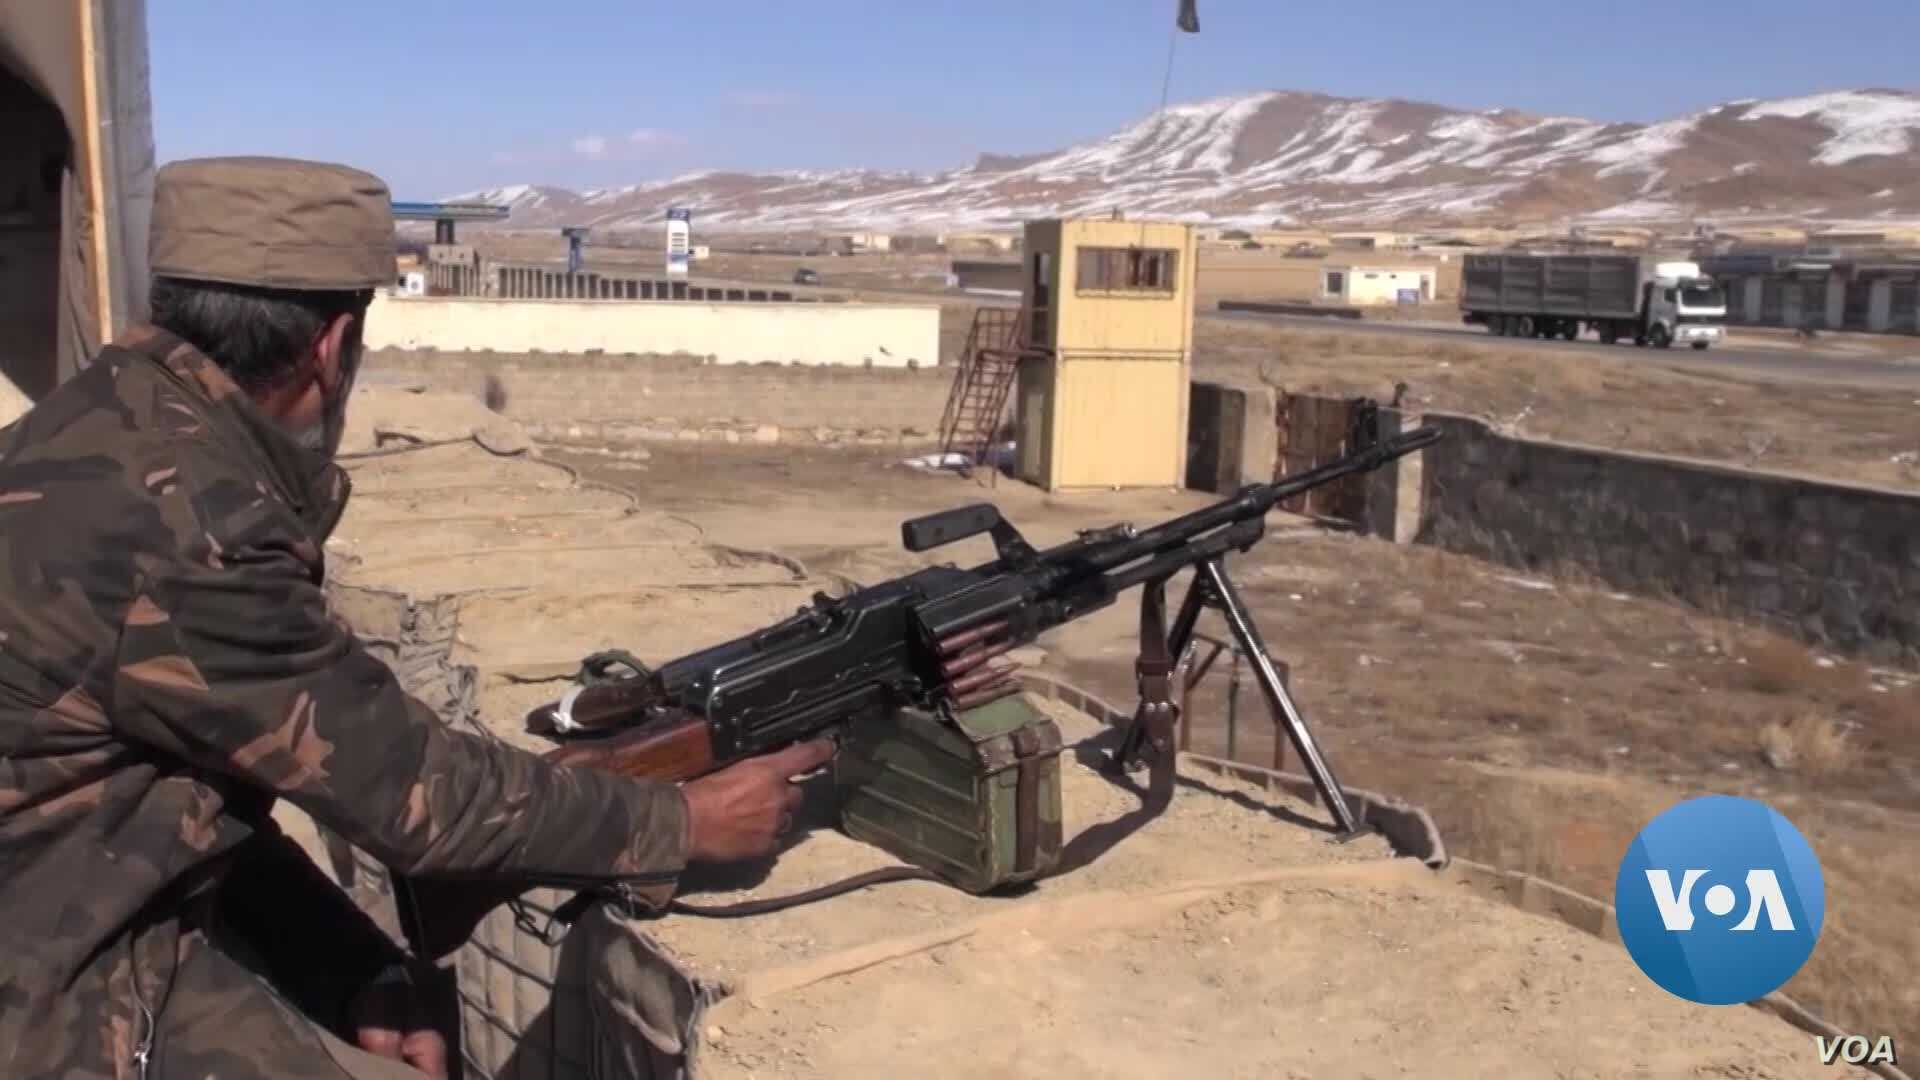 Afghans Experience Temporary Peace but Political Turmoil Clouds Future